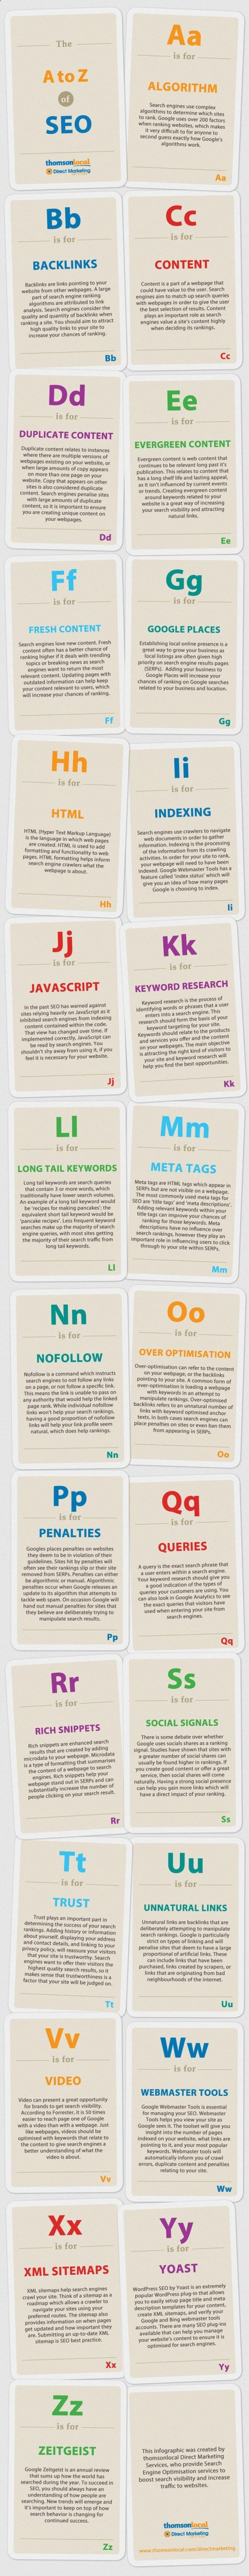 The A to Z of SEO #infografia #infographic #seo. www.conectarnos.com/ learn more here:  http://jvz9.com/c/459377/216079